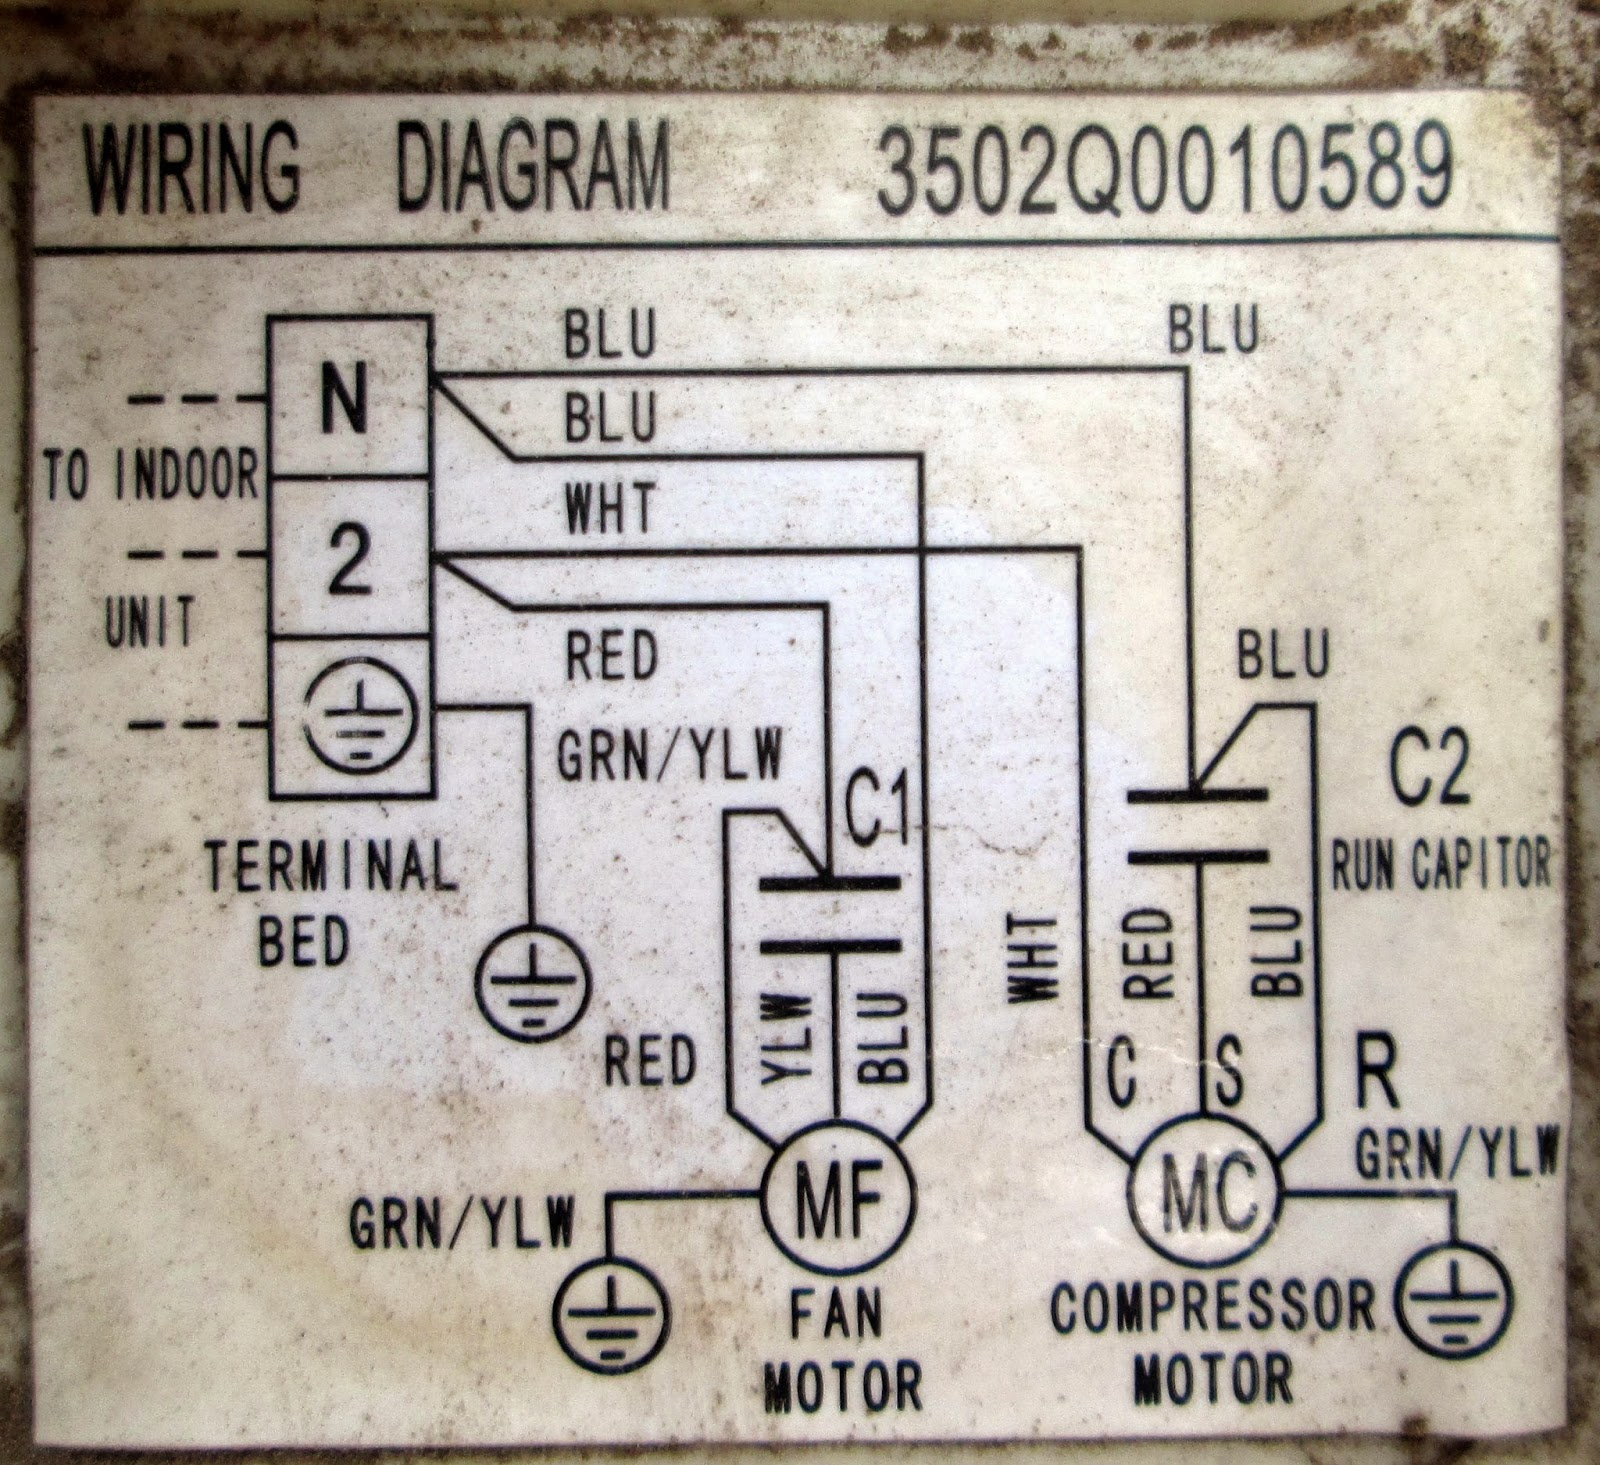 Wiring Diagram Ac Sharp Inverter Diagrams Outdoor Service Kota Serang Baru Kelistrikan Split Rh Ksb Blogspot Com Rv 3000w